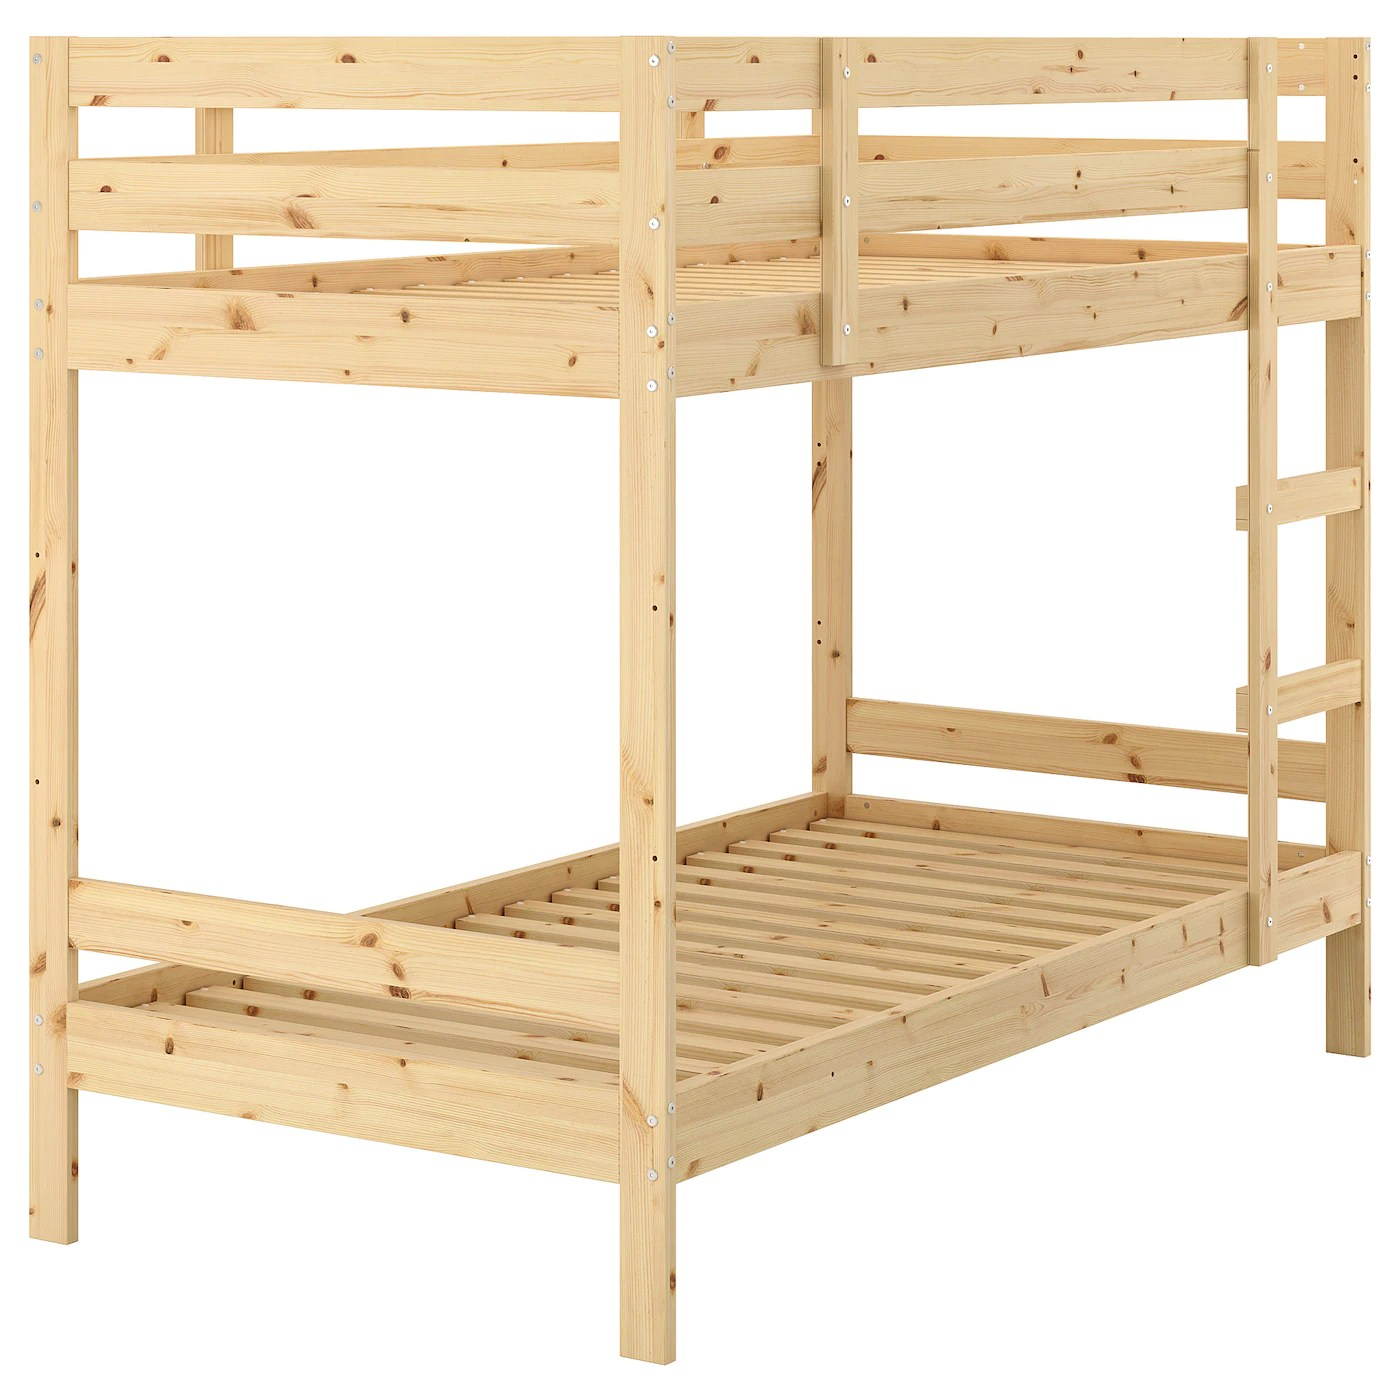 Mydal Structure Lits Superposes Pin 90x200 Cm Ikea